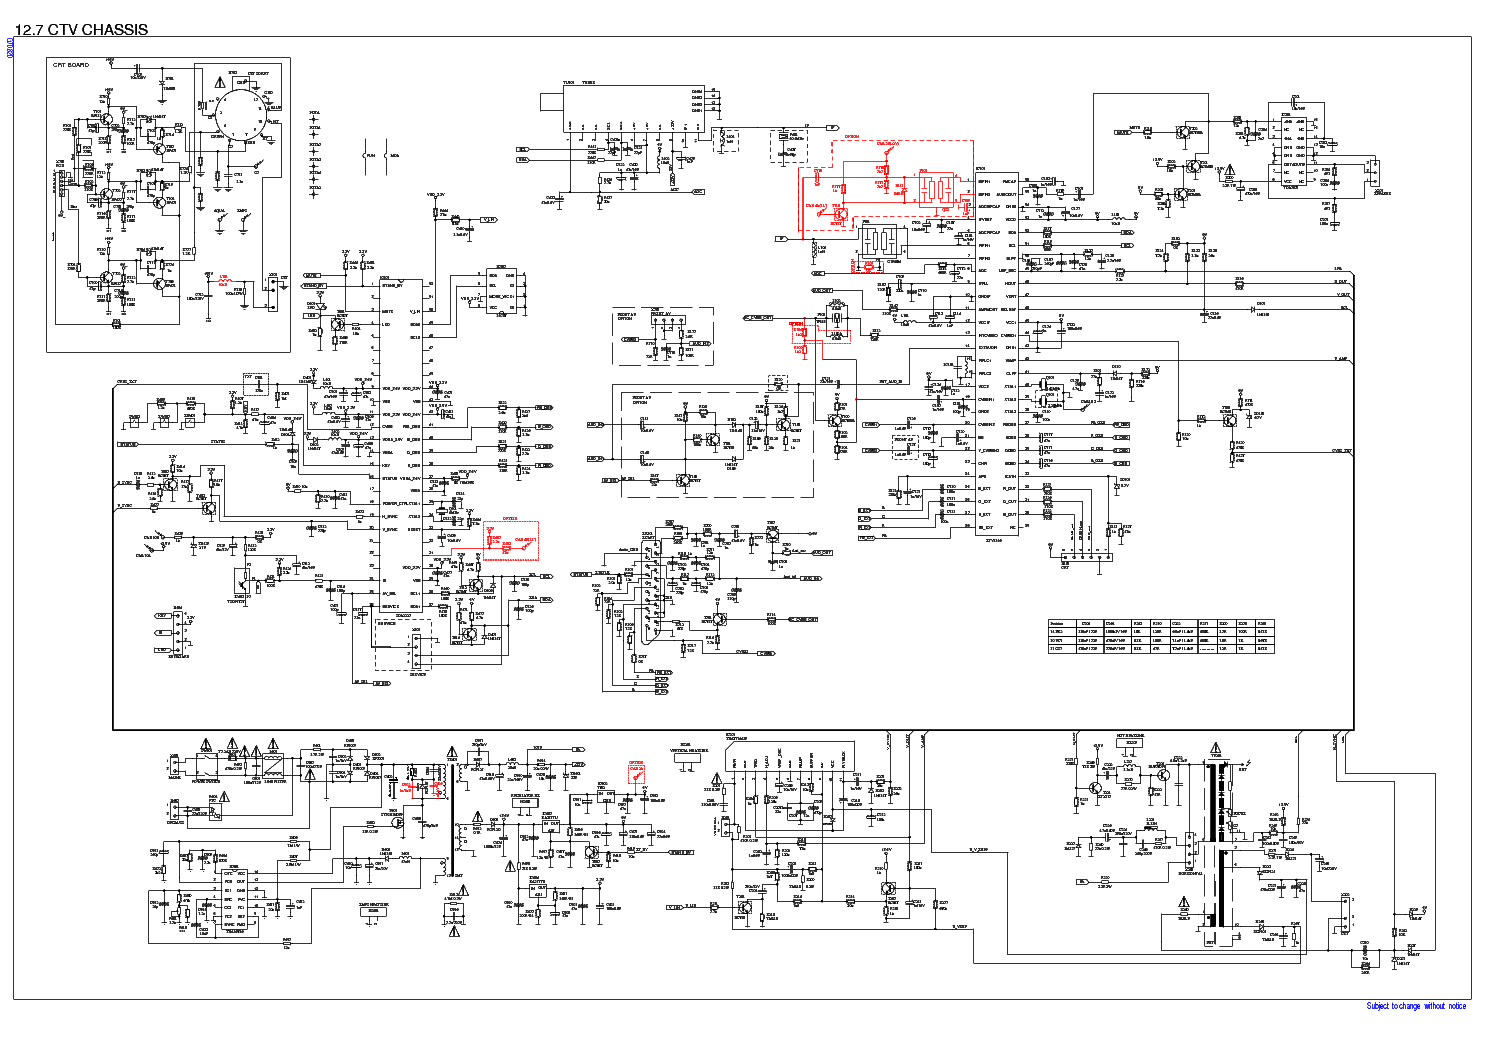 Top Circuits Page 112 555 Timer Schematic Equivalent Free Download Wiring Diagram Beko Tel Chassis 127 Circuit